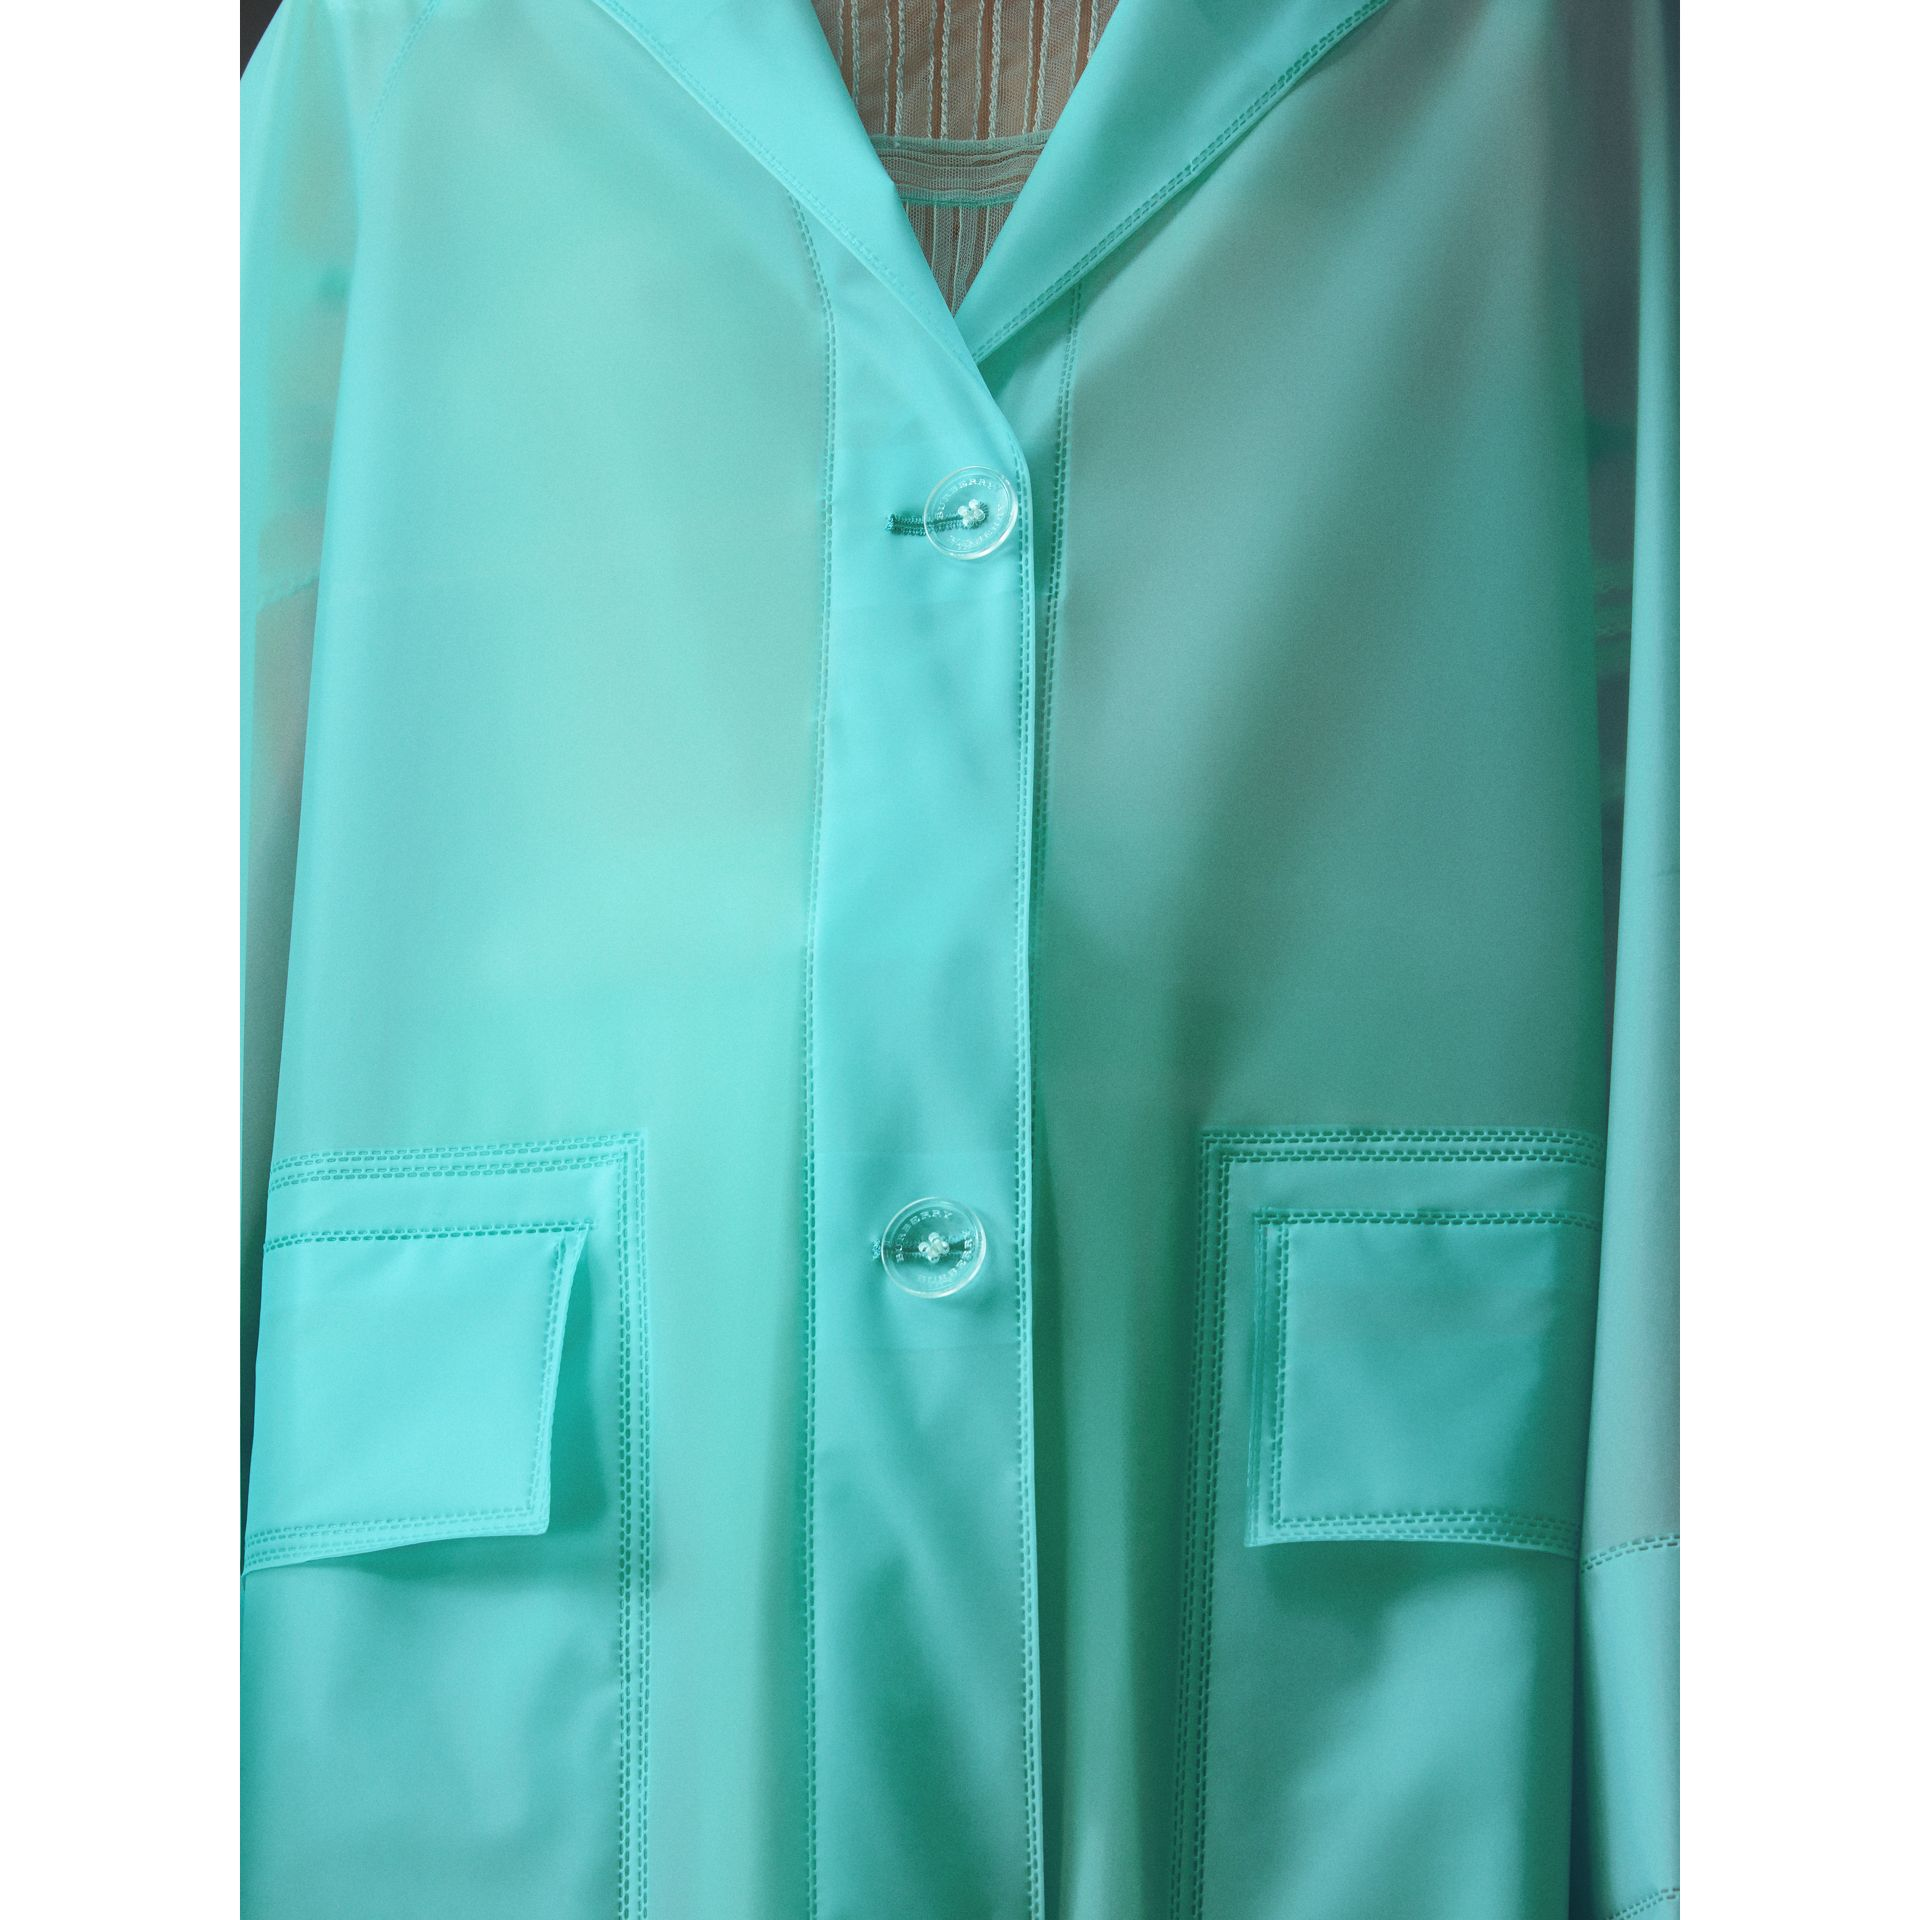 Soft-touch Plastic Car Coat in Turquoise - Women | Burberry Canada - gallery image 1